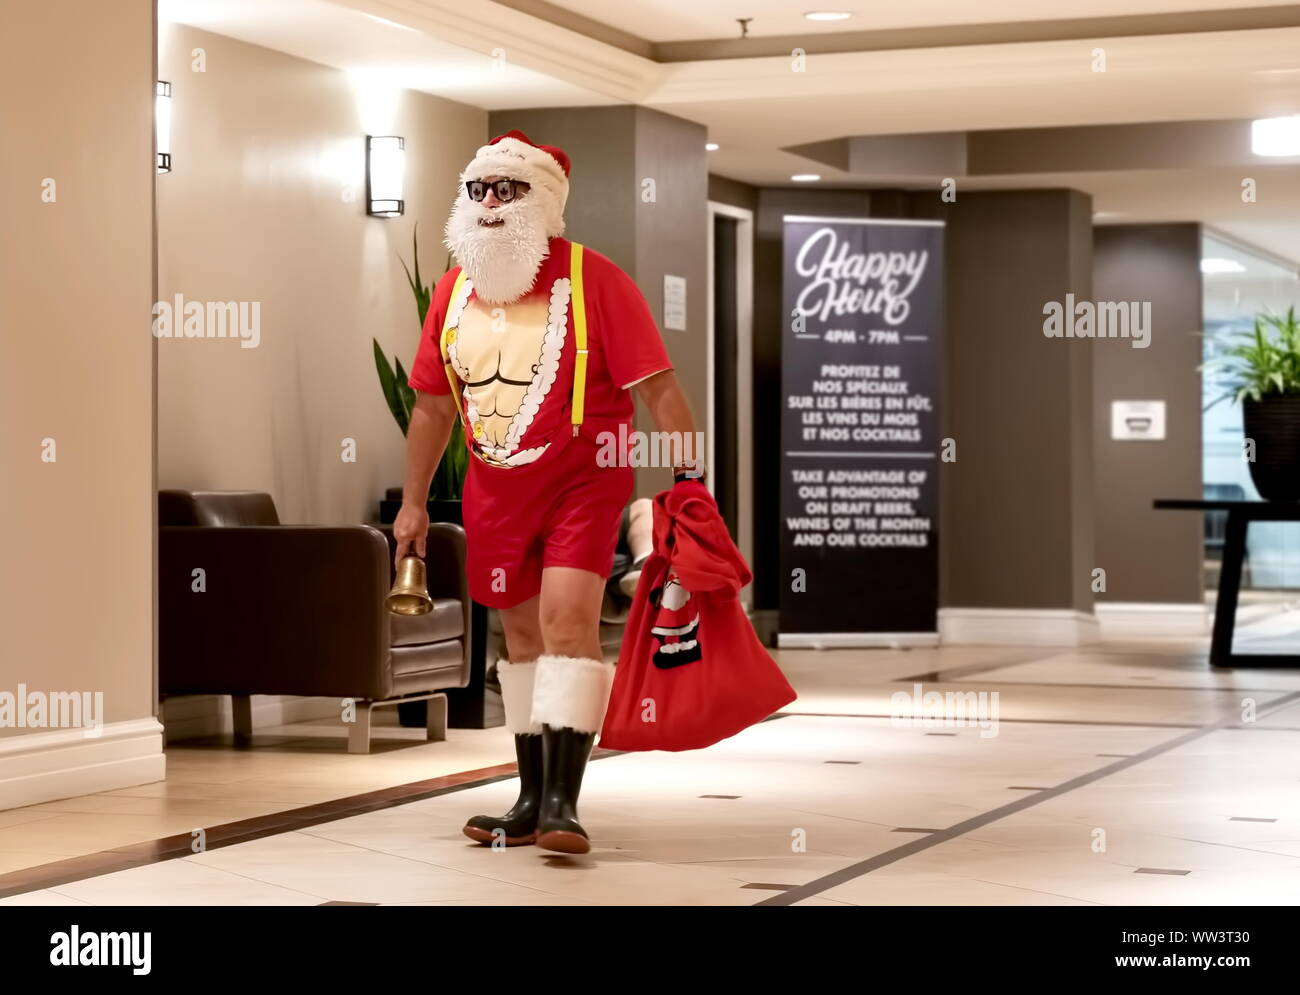 Montreal, Canada. Jul 2019. Man in a Santa costume exposing some hard body workout abs leaving a booze bar after an Happy Hour event. Stock Photo